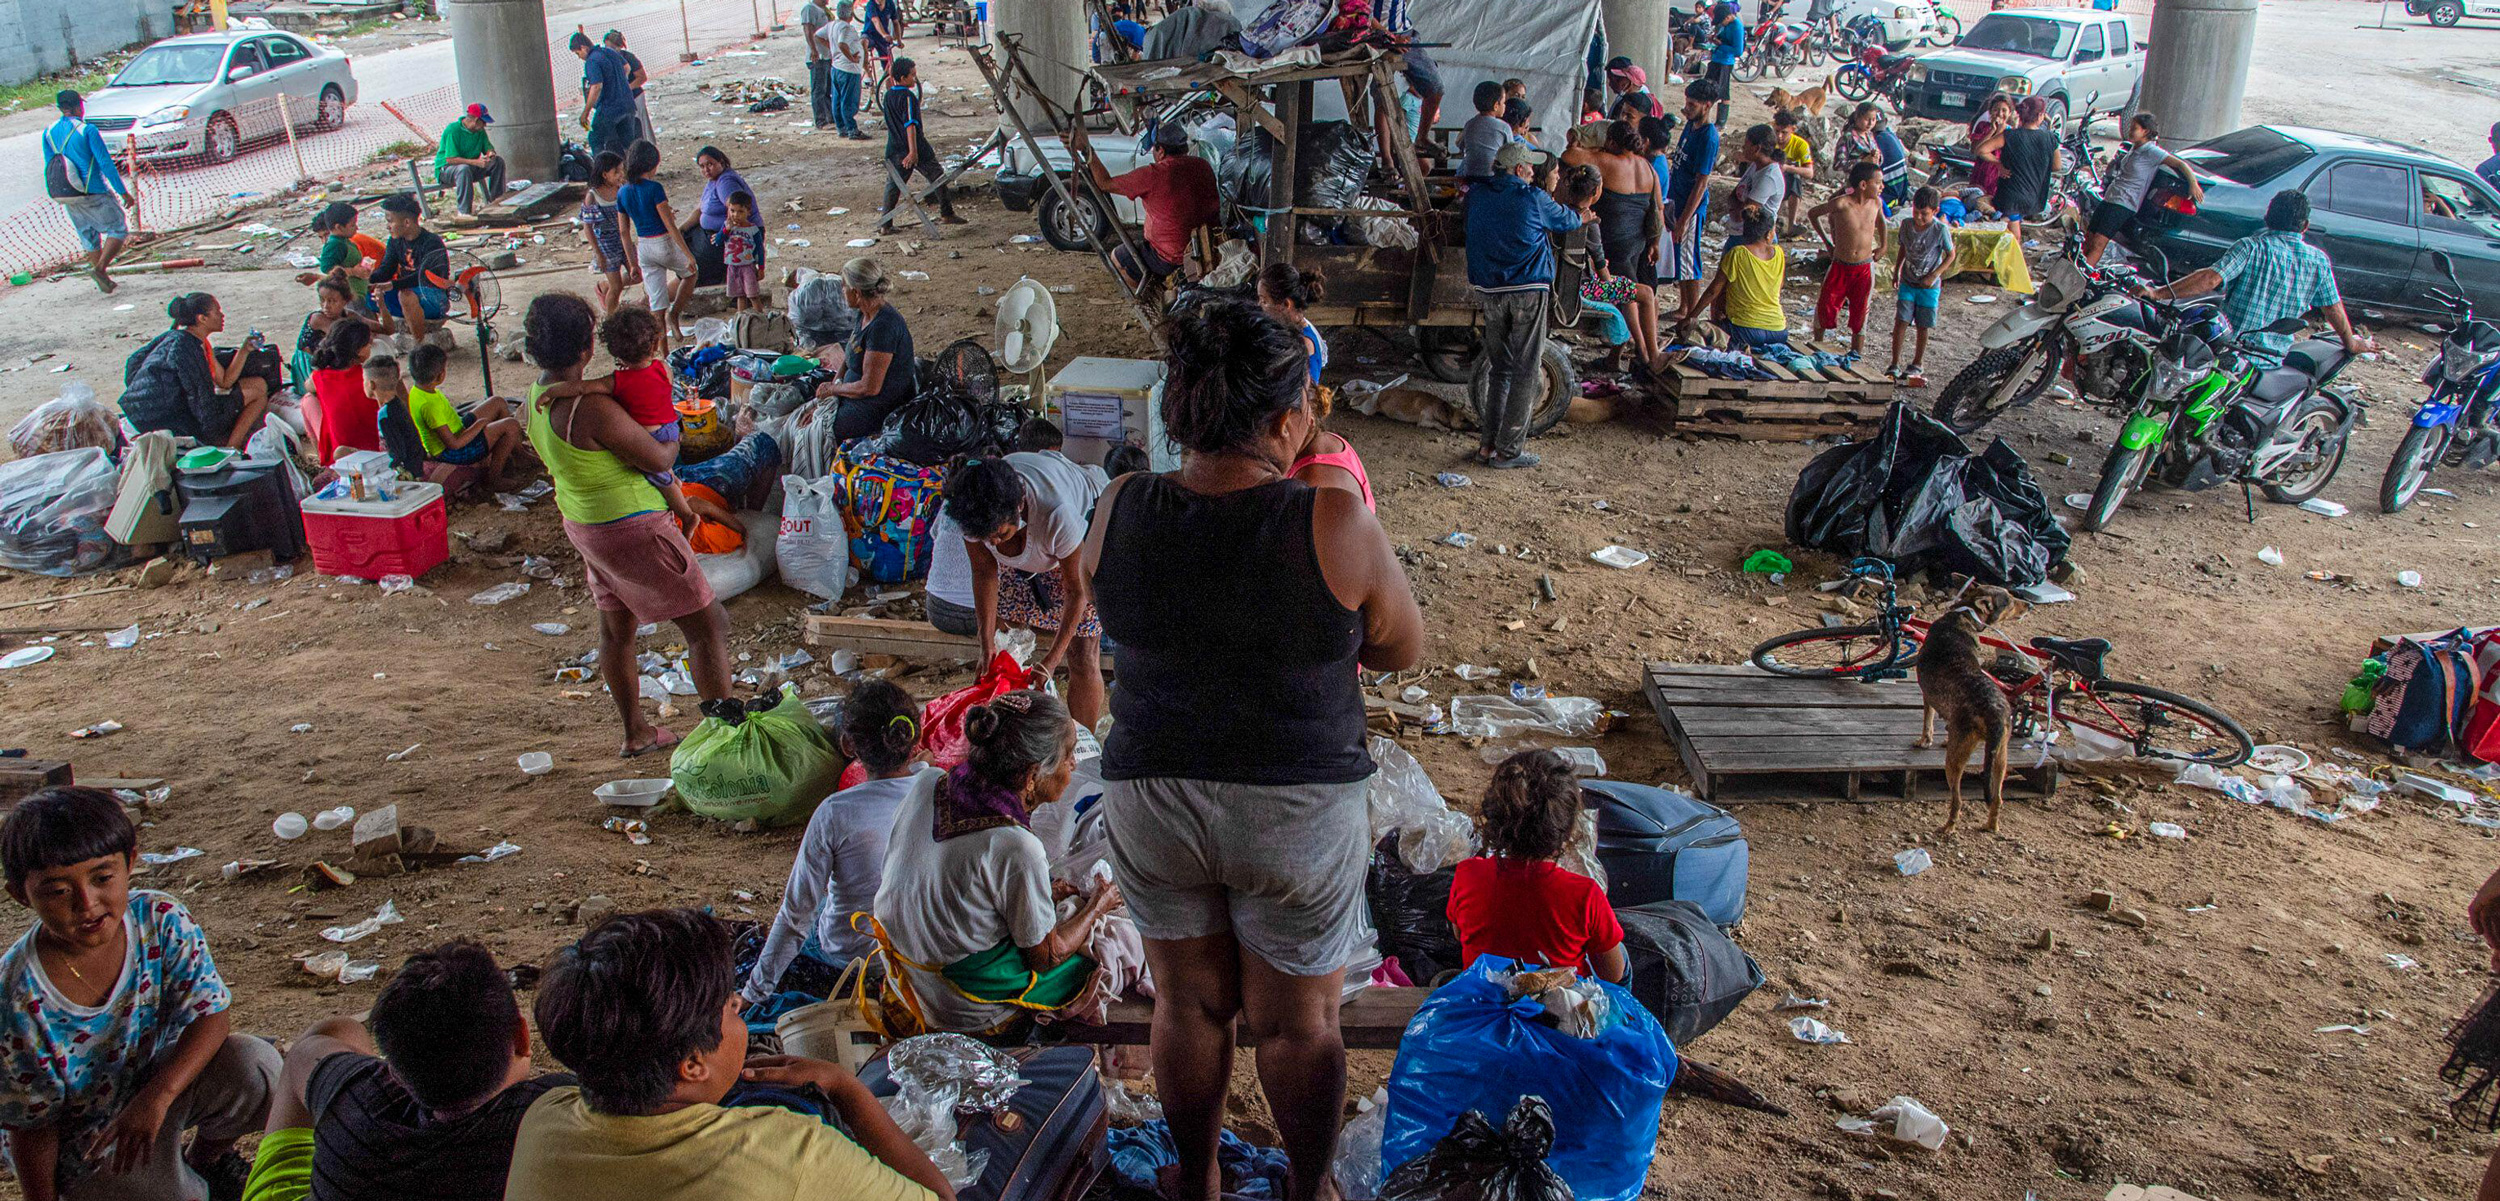 People in a makeshift camp underneath an underpass in Honduras after Hurricane Eta